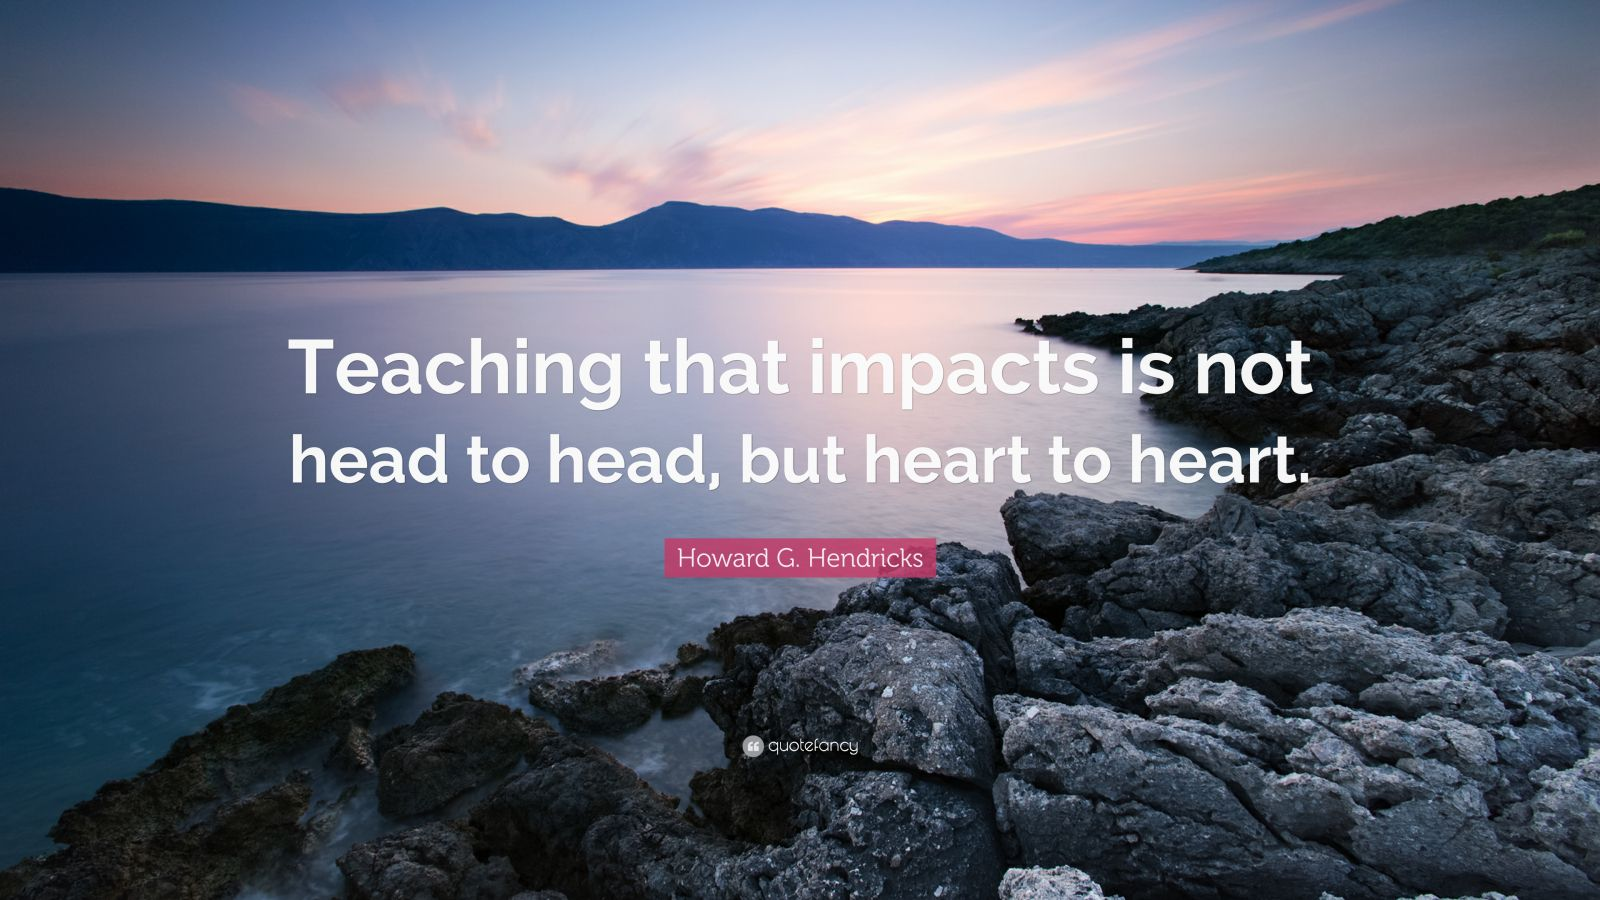 """Howard G. Hendricks Quote: """"Teaching that impacts is not head to head, but heart to heart."""""""